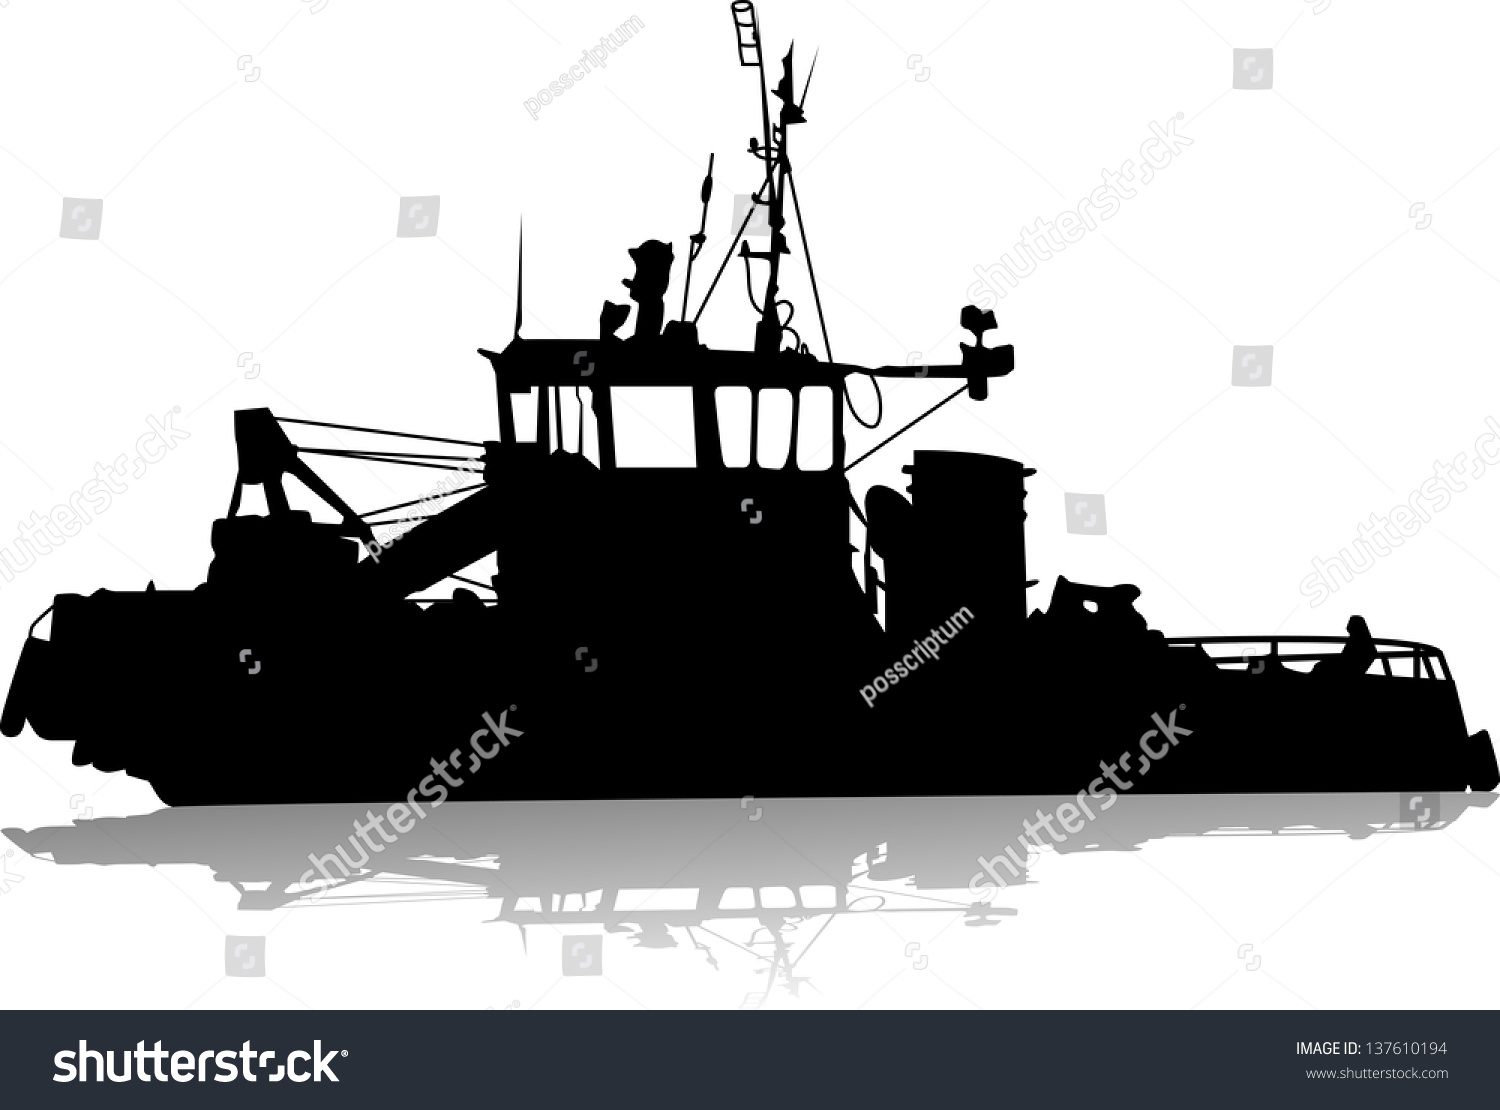 Commercial fishing boat silhouette